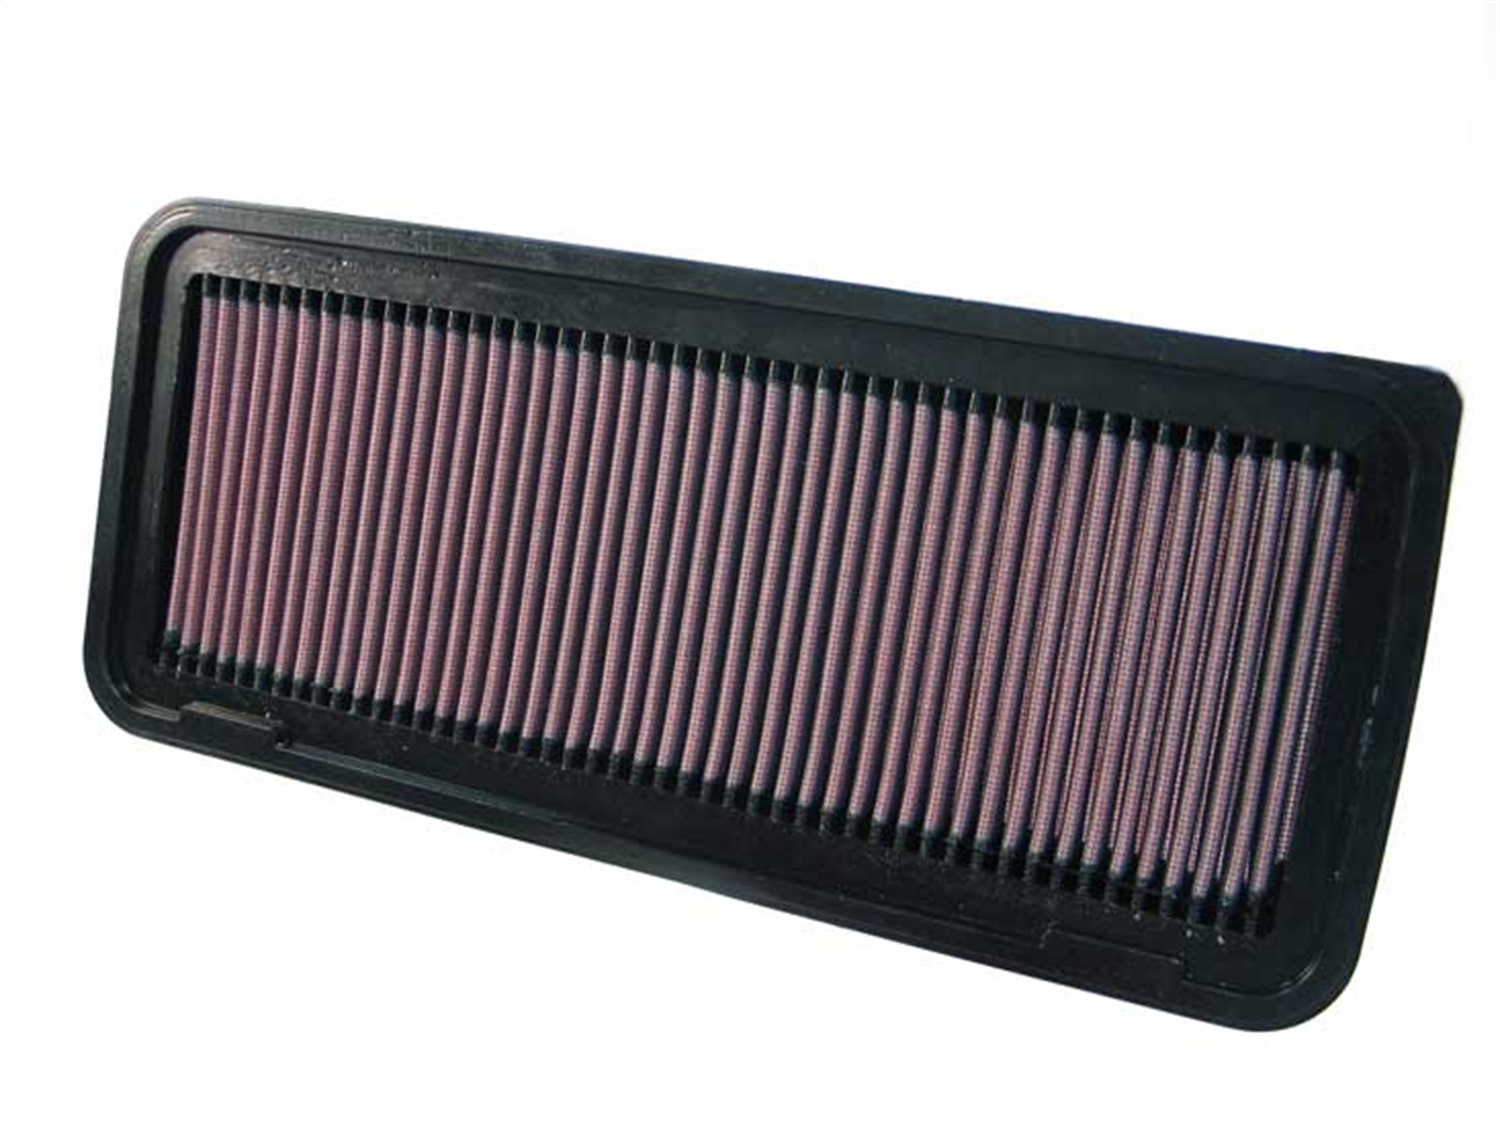 K&N Filters 33-2344 Air Filter Fits 06-10 Highlander RX400h 33-2344